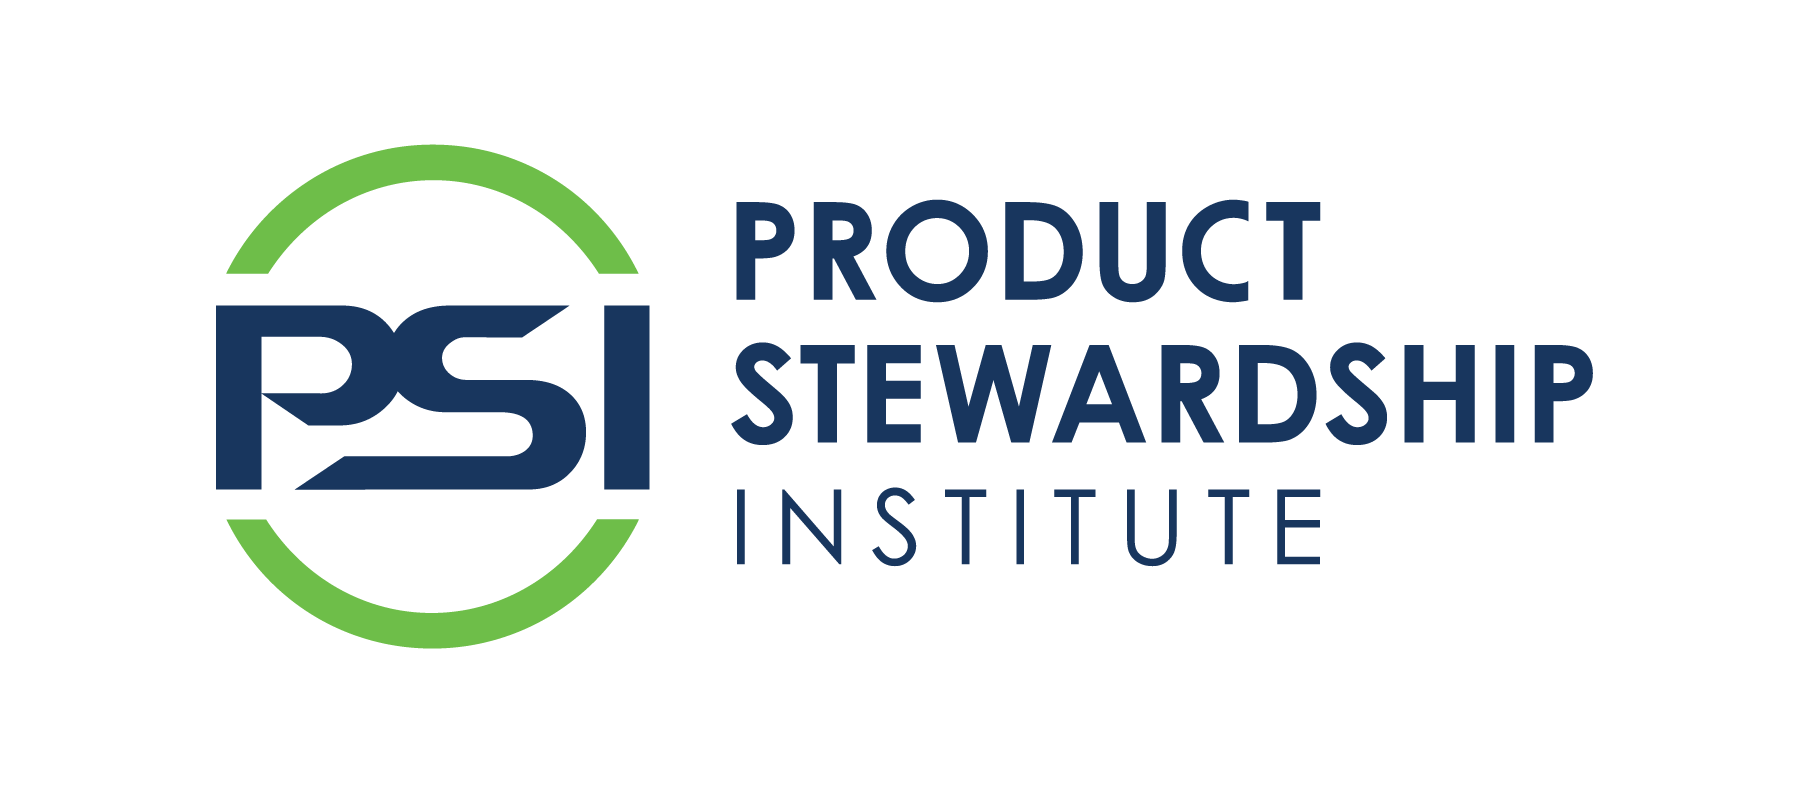 Packaging - Product Stewardship Institute (PSI)